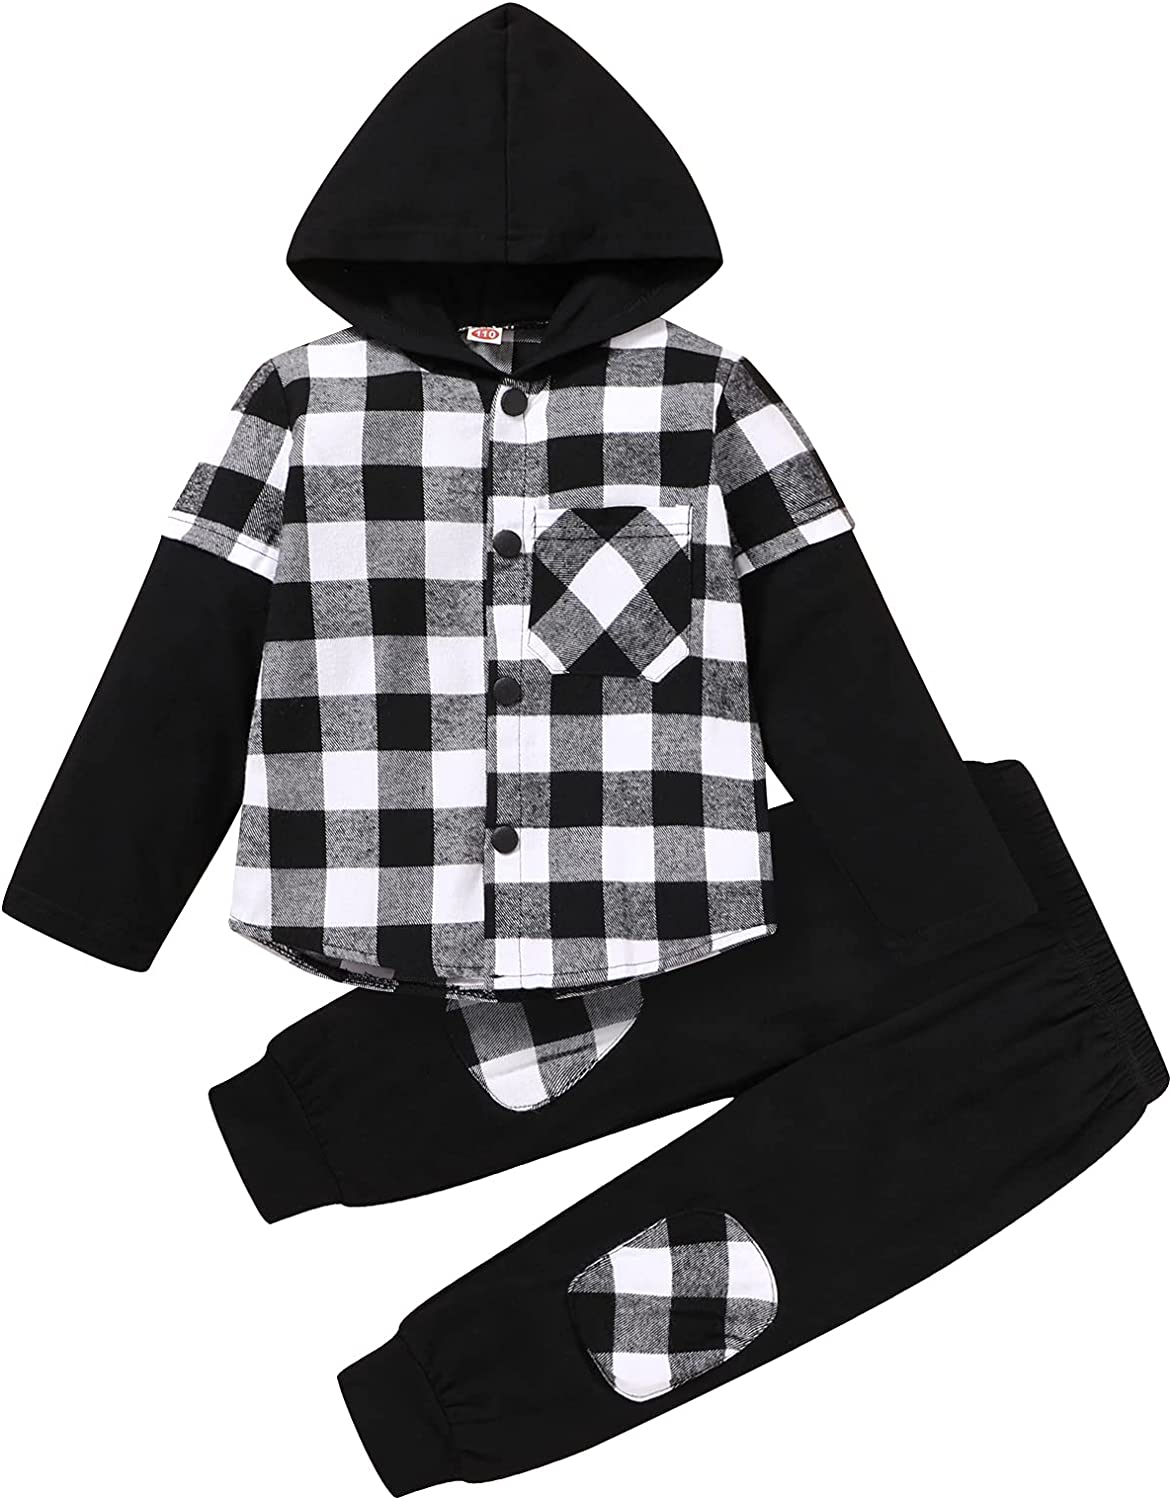 Toddler Boy Clothes Hoodie Sweatsuit Outfits Little Kids Fall Winter Classical Plaid Shirt + Pants Set